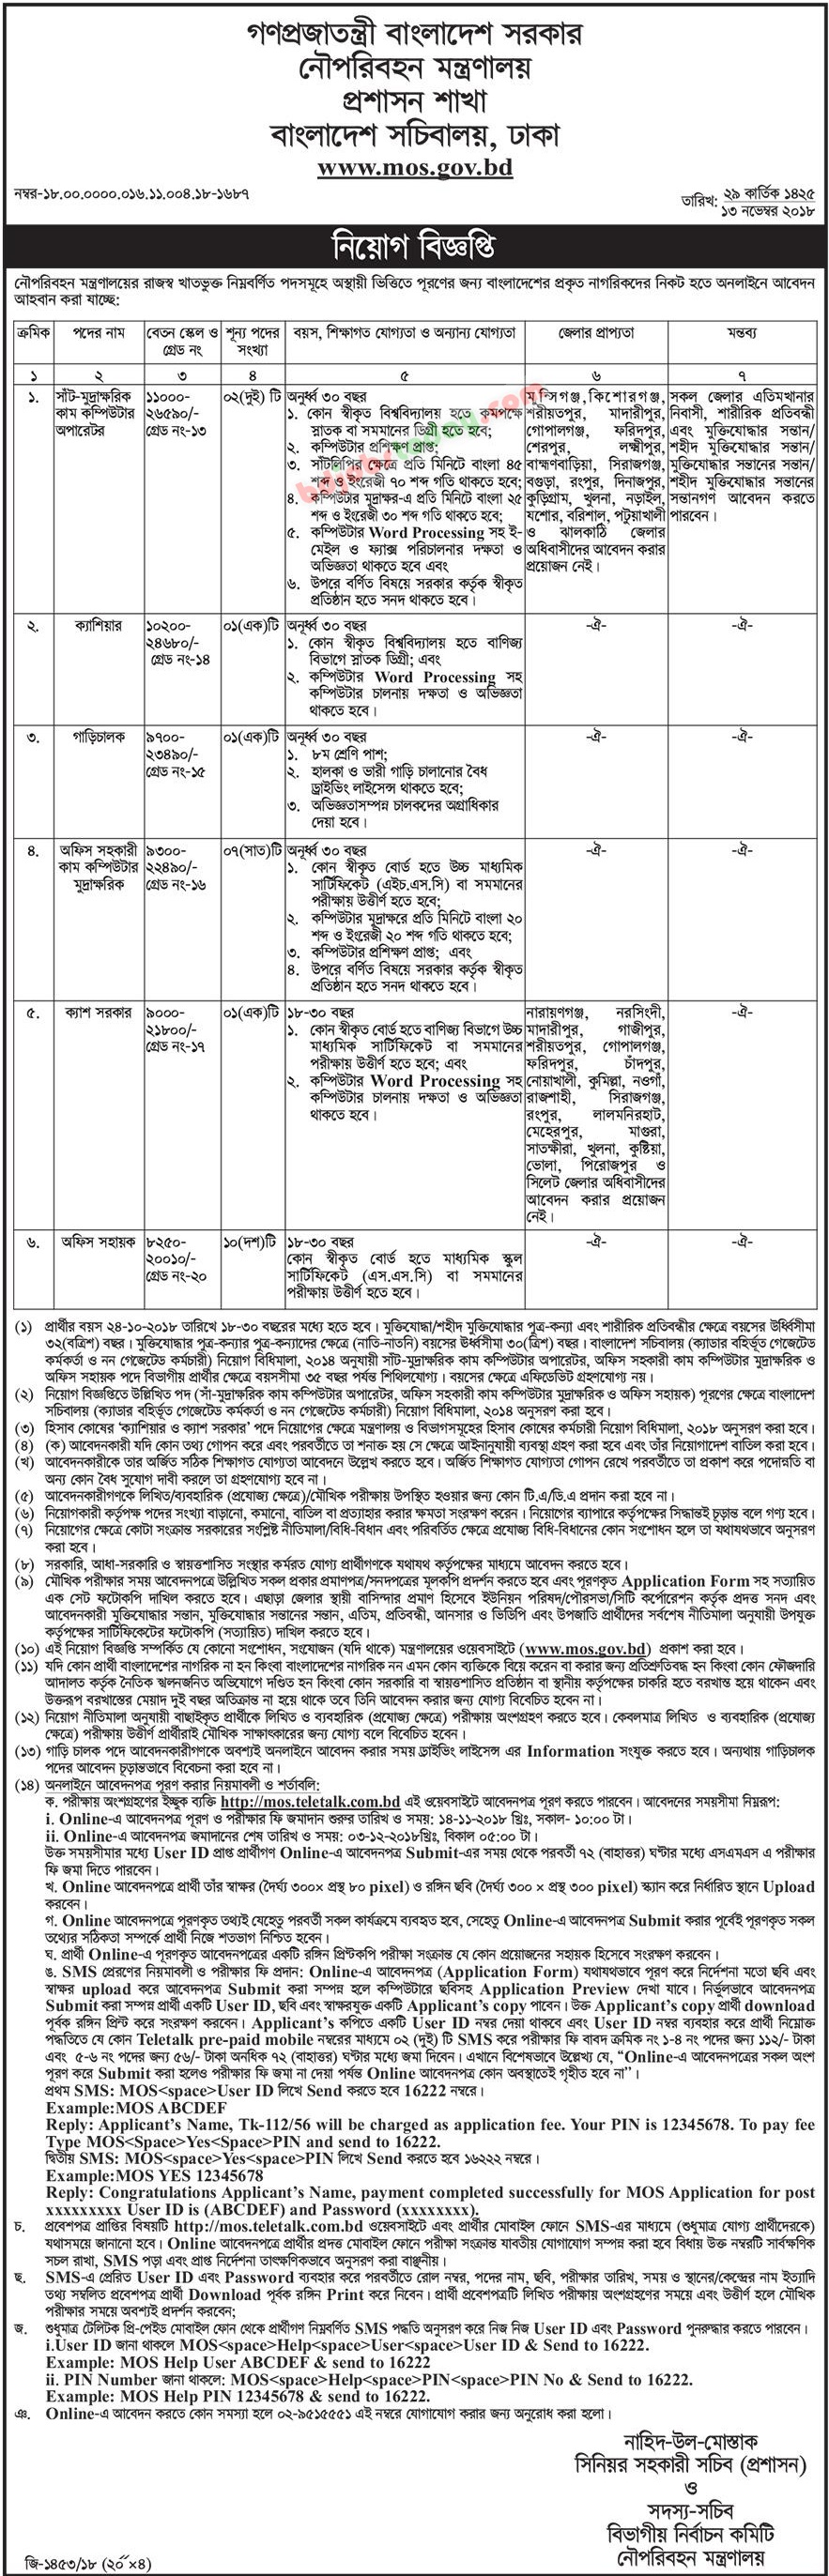 Ministry of Shipping jobs